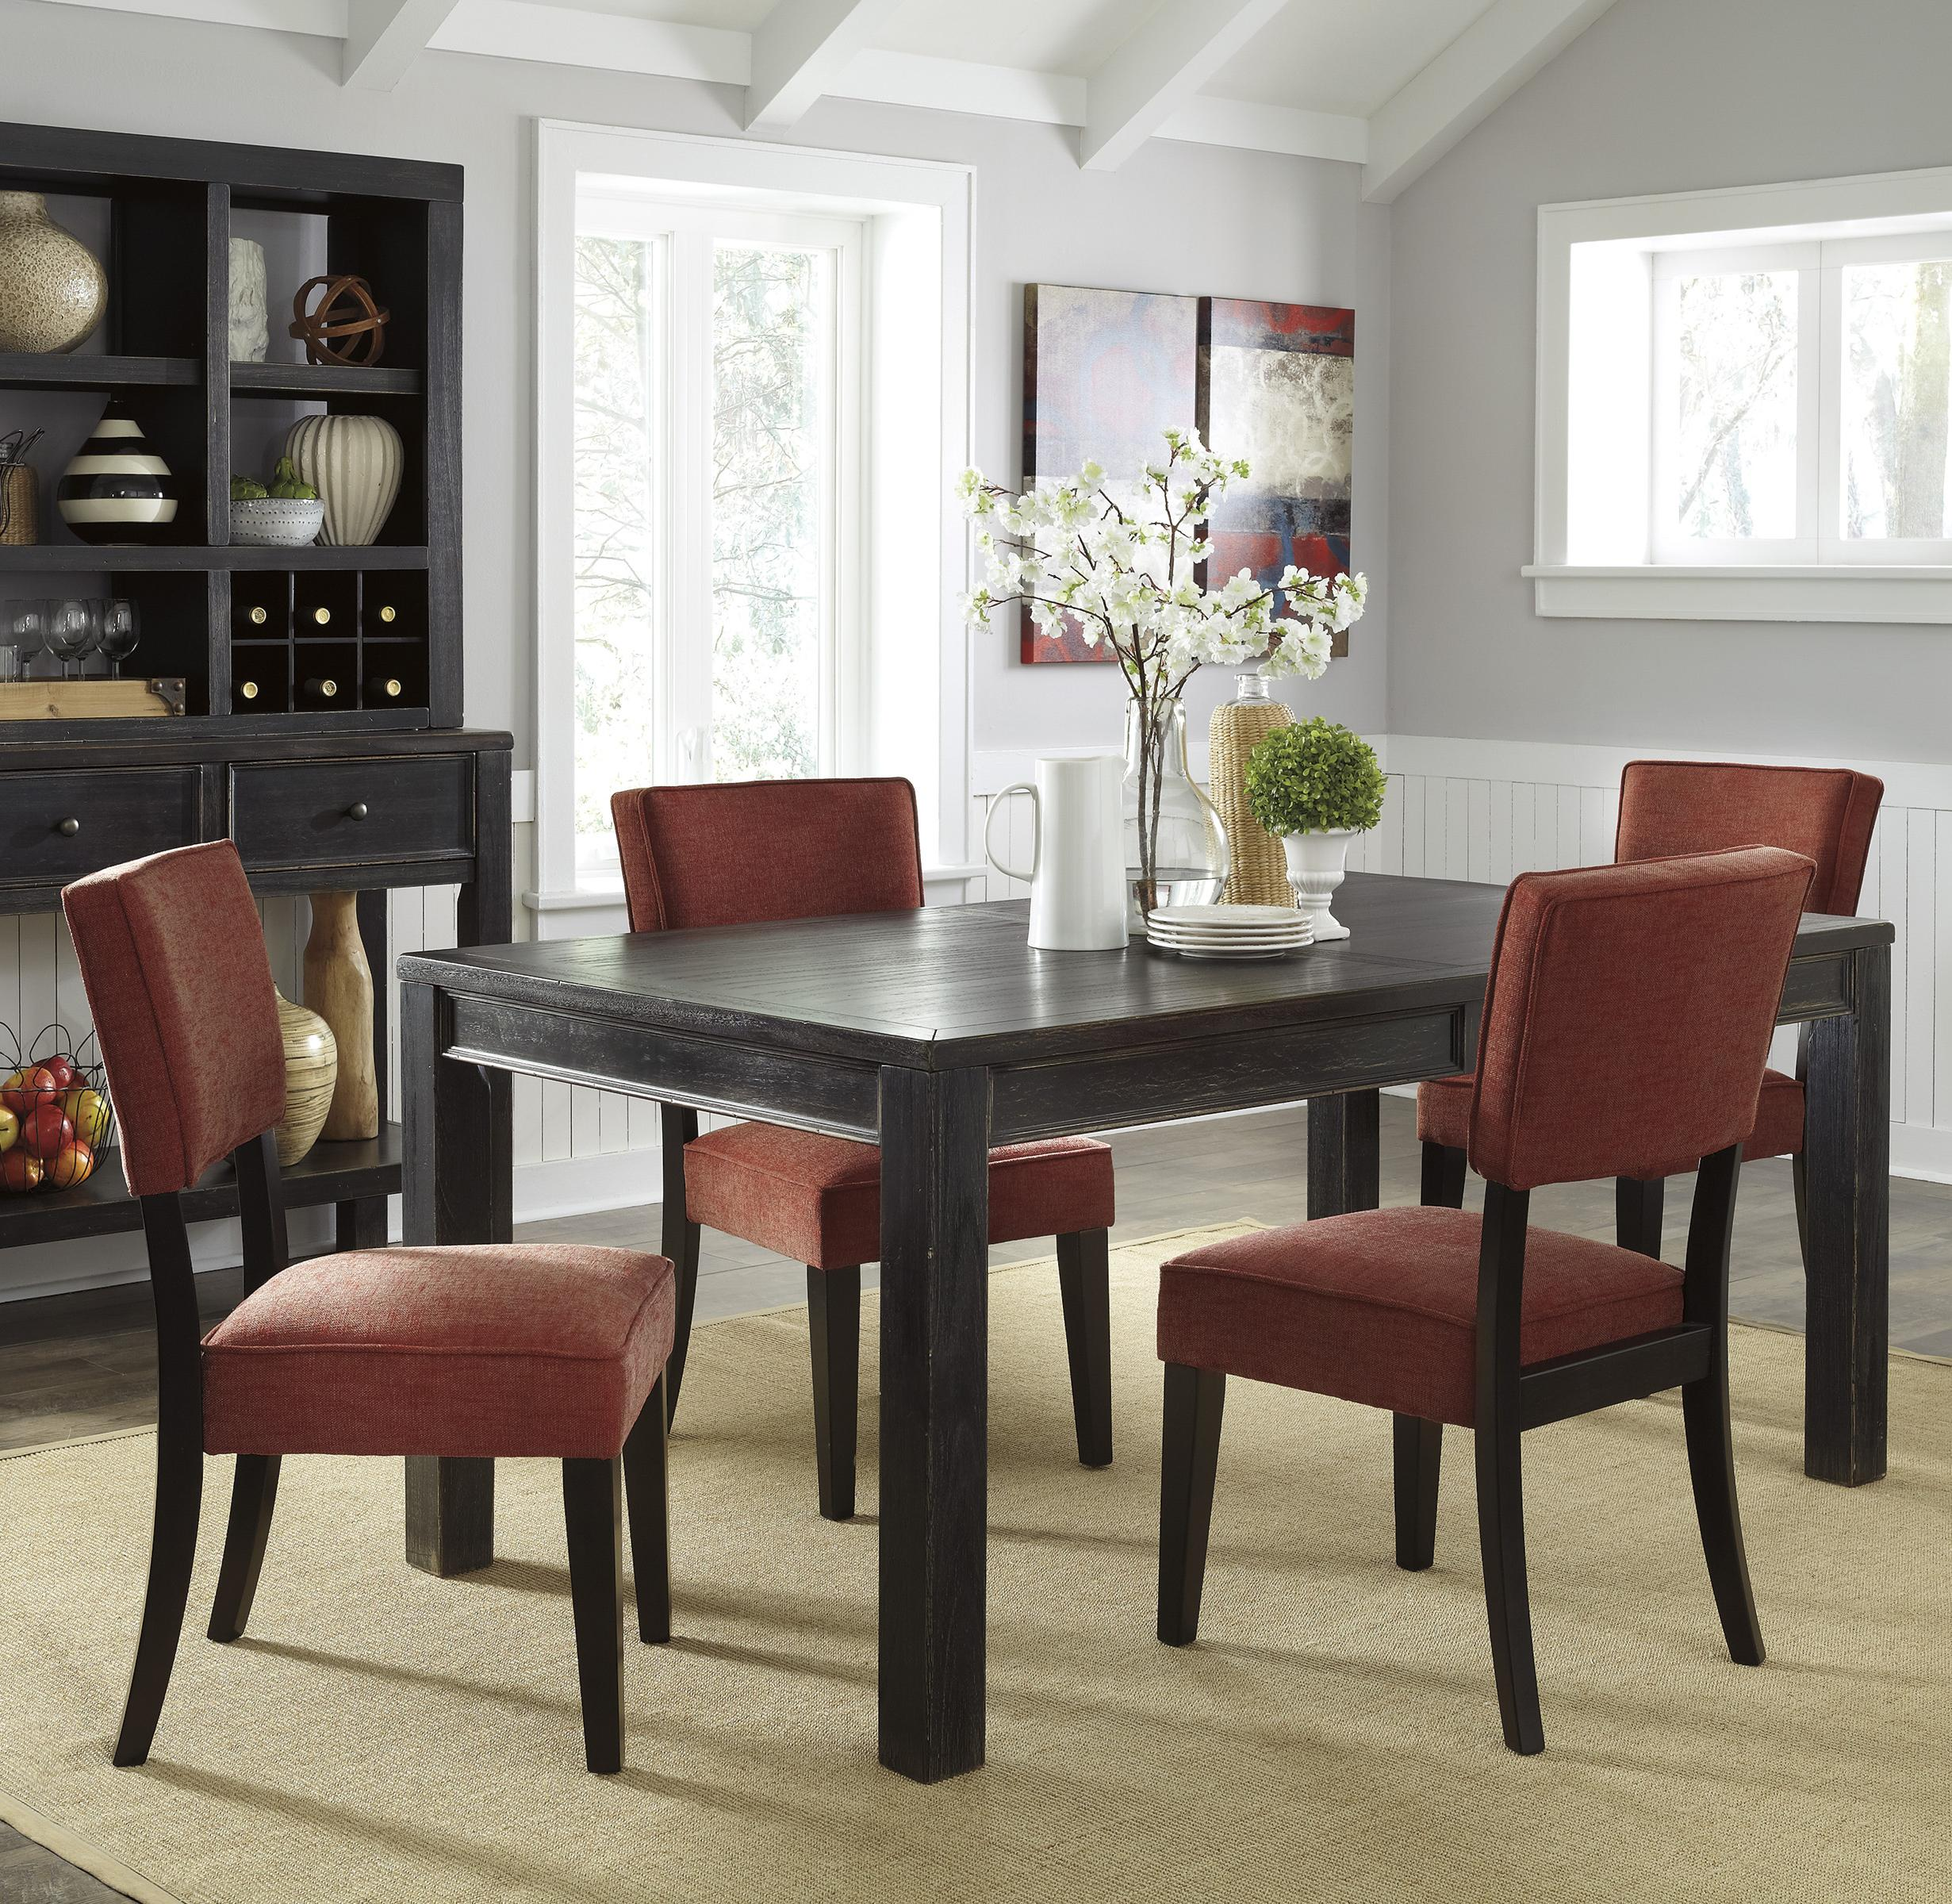 Signature Design by Ashley Gavelston 5-Piece Rectangular Table Dining Set - Item Number: D532-25+4x04